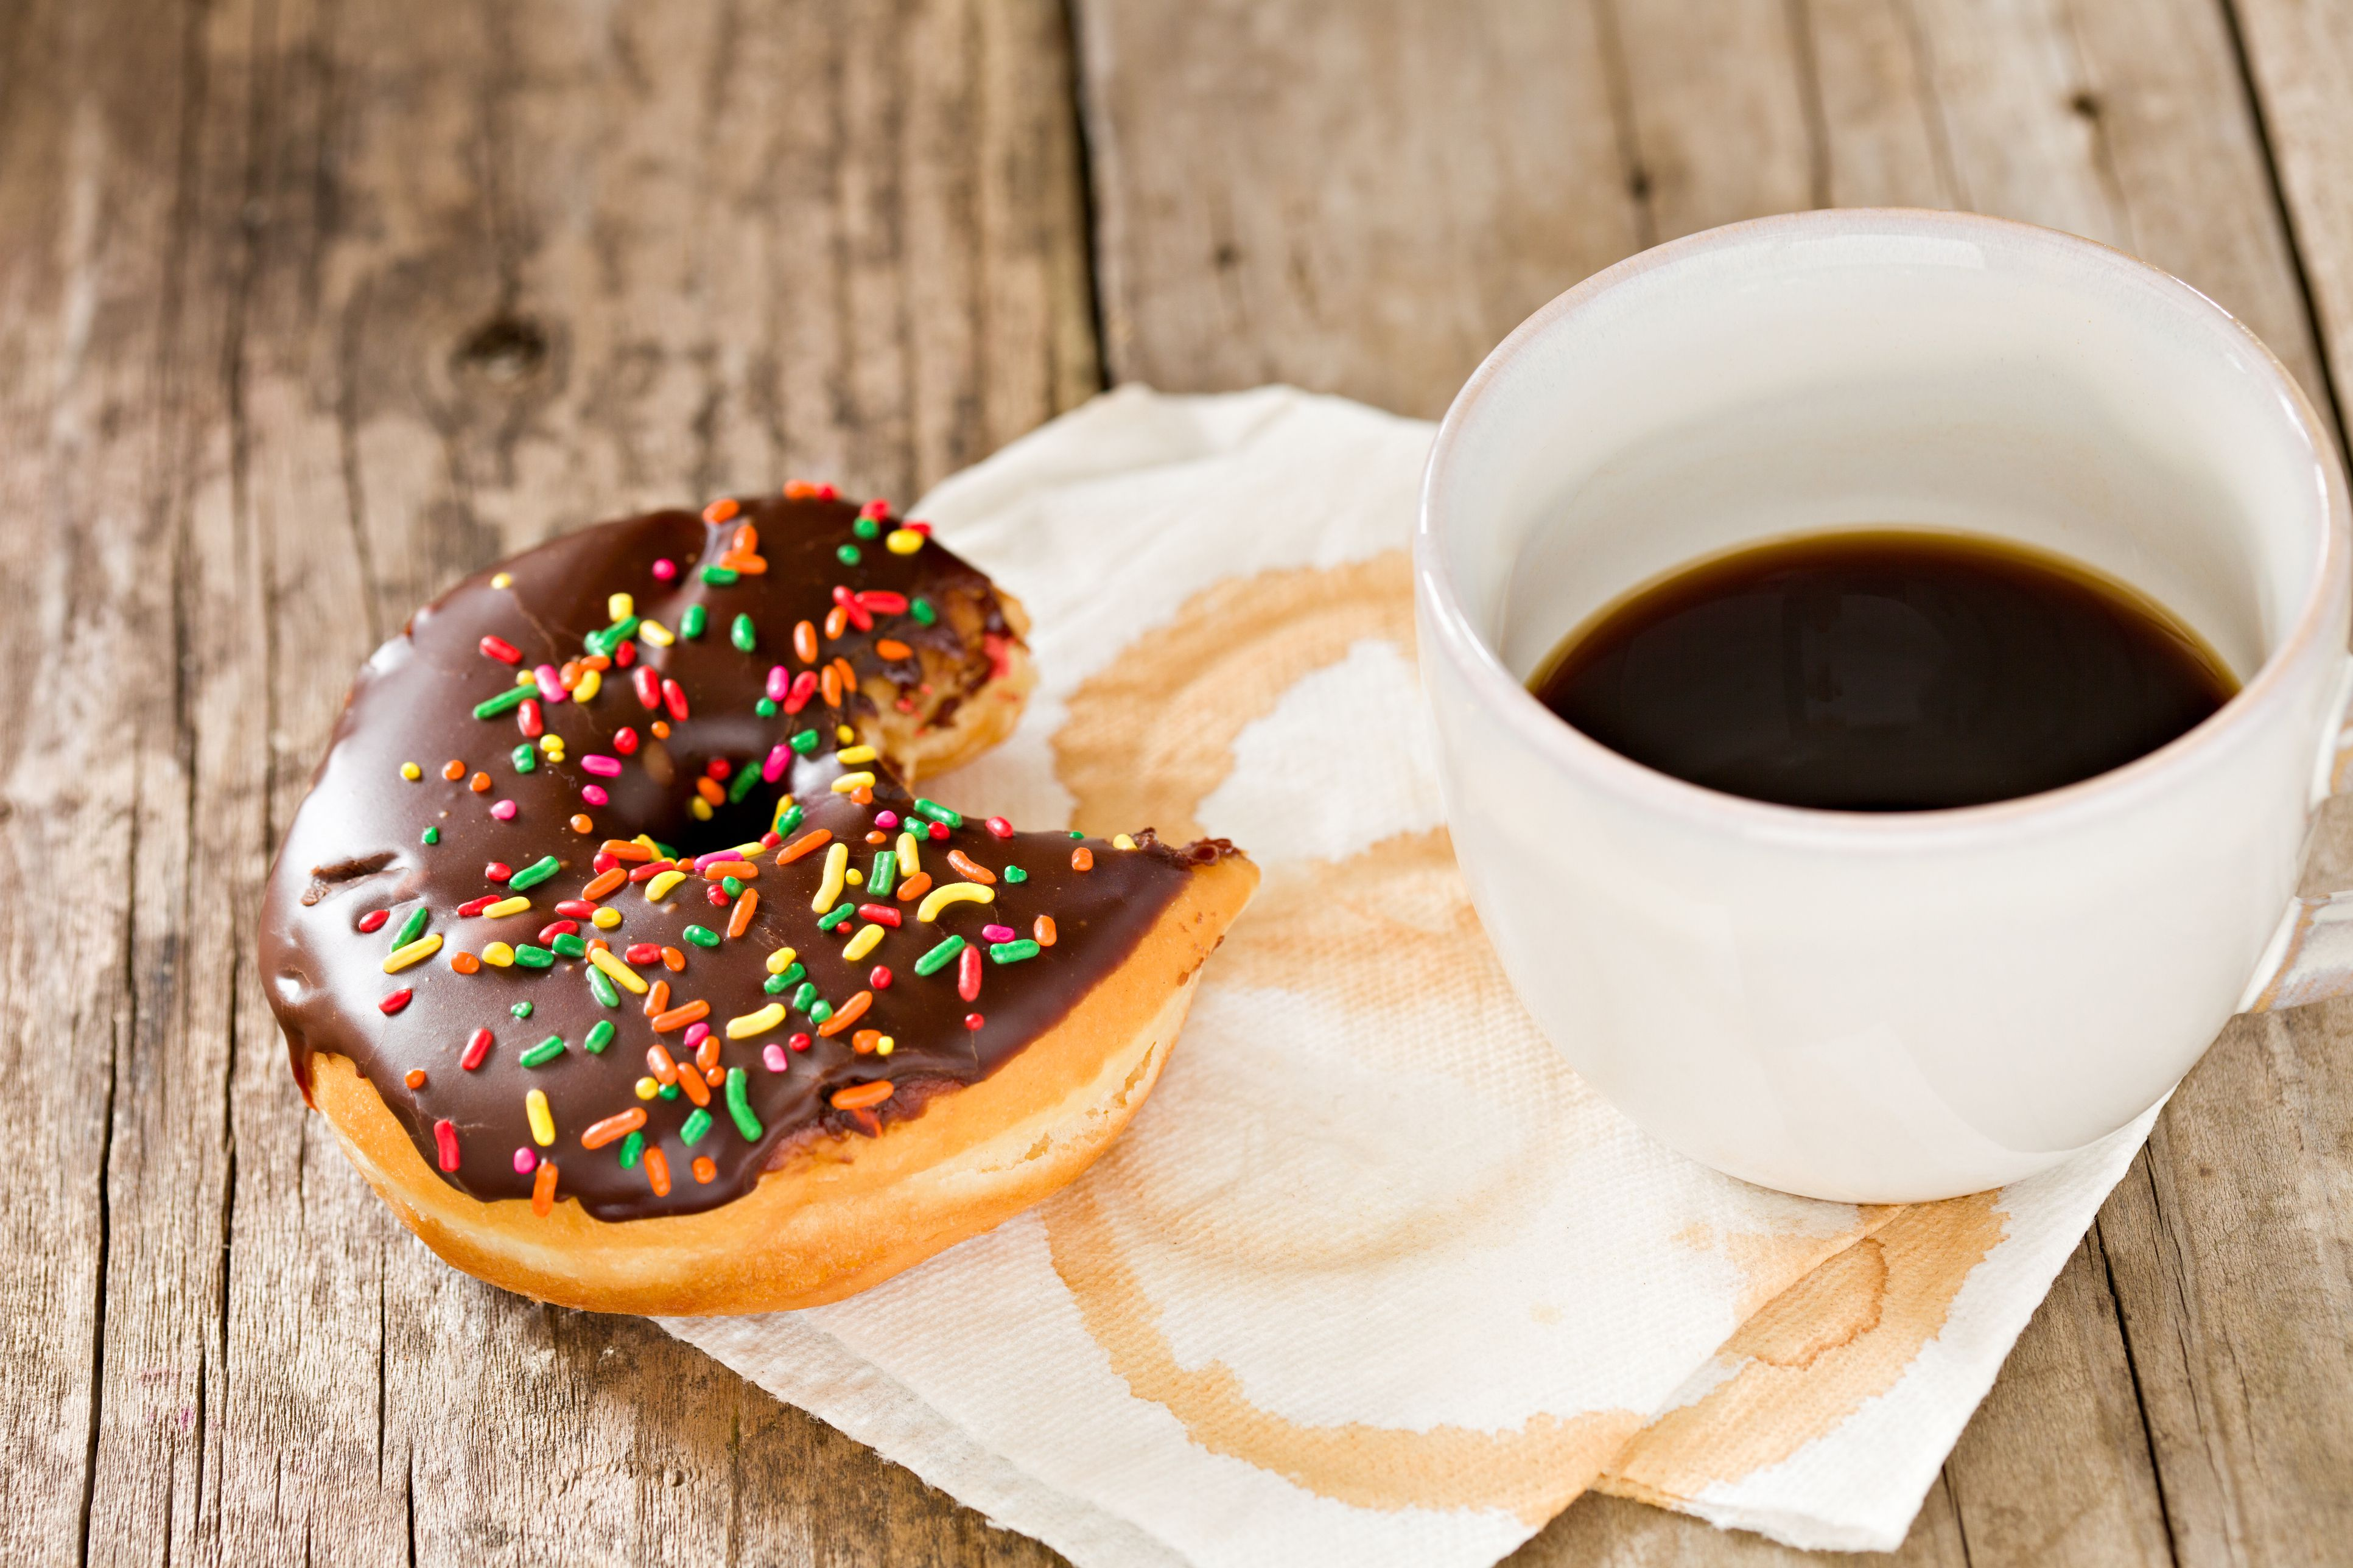 A cup of coffee and a donut.